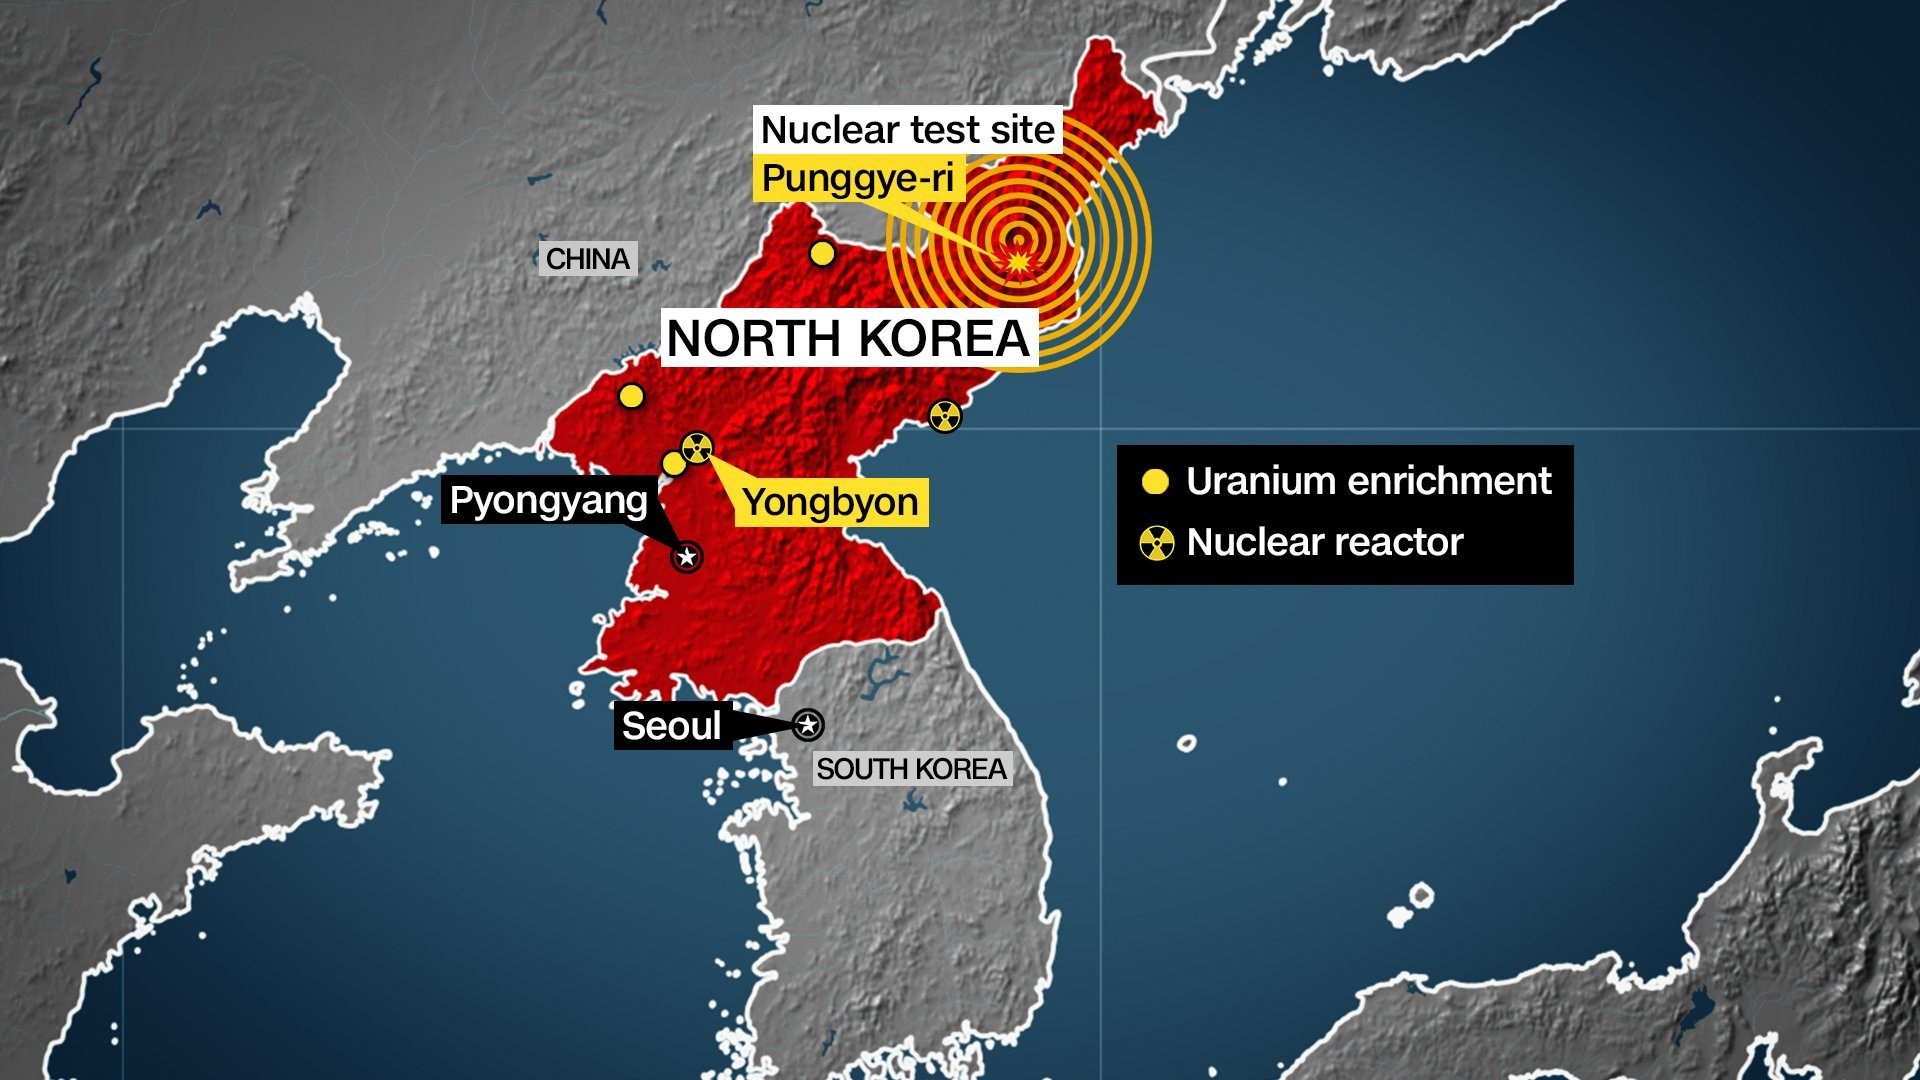 China fears another nuclear test, says North Korean quake 'suspected explosion'